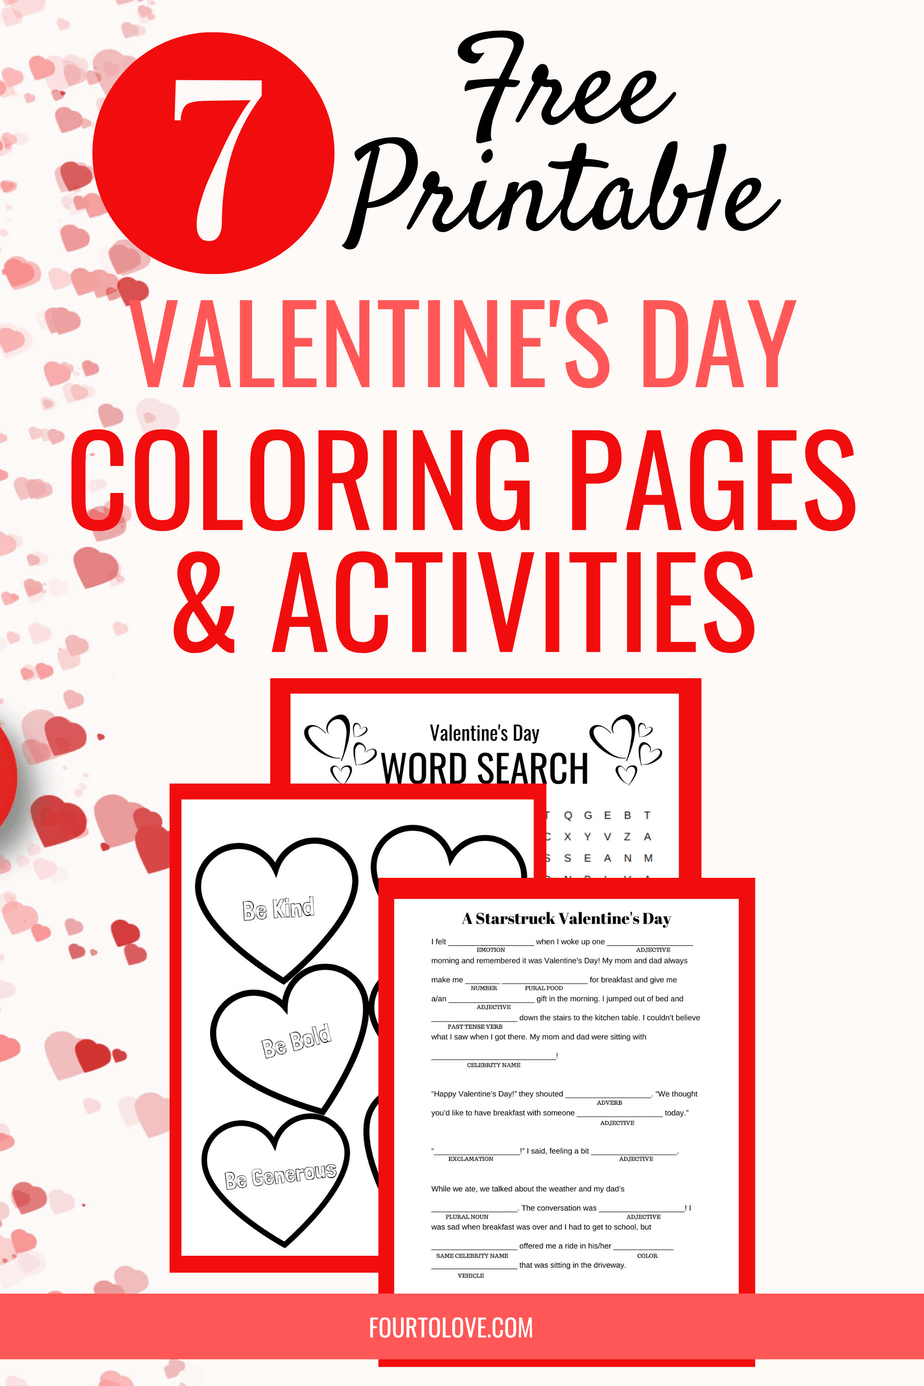 7 free printable Valentine's Day coloring pages and activities